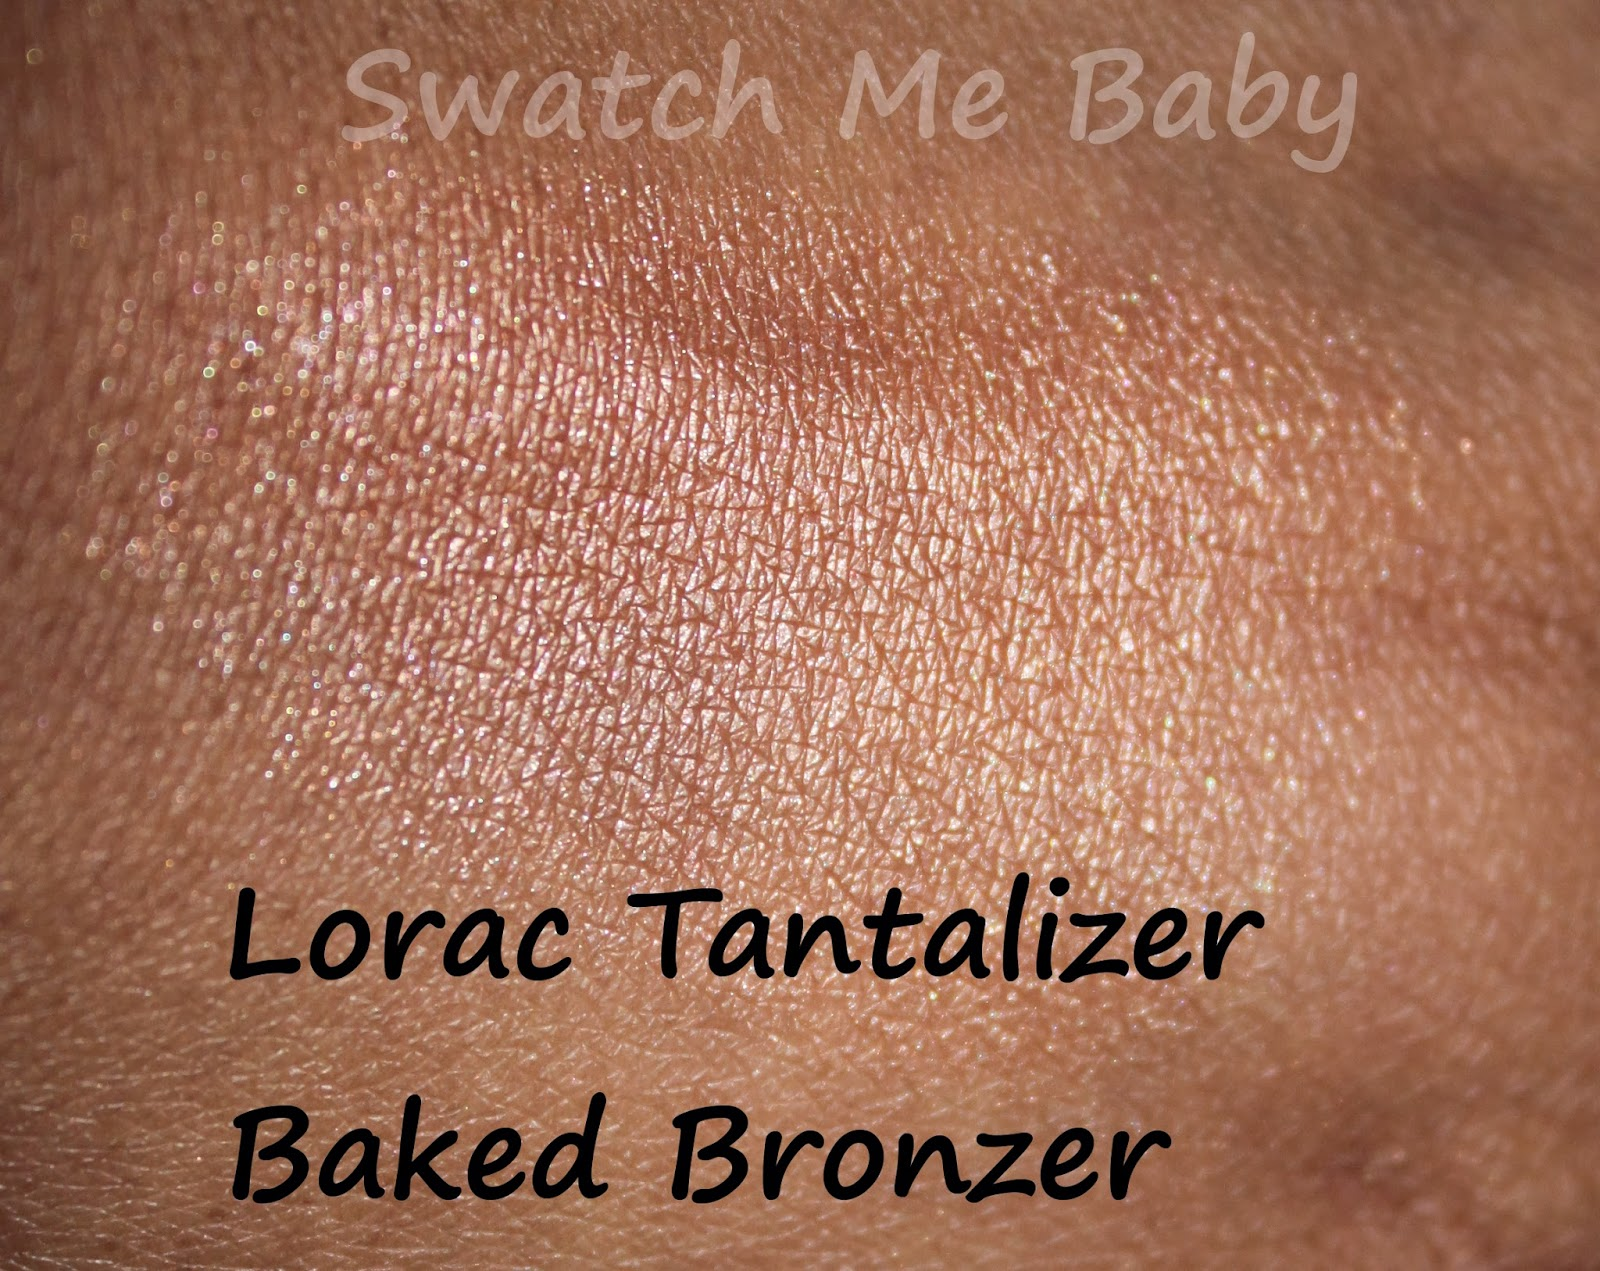 LORAC Travel-Size Tantalizer Baked Bronzer Swatch dark skin